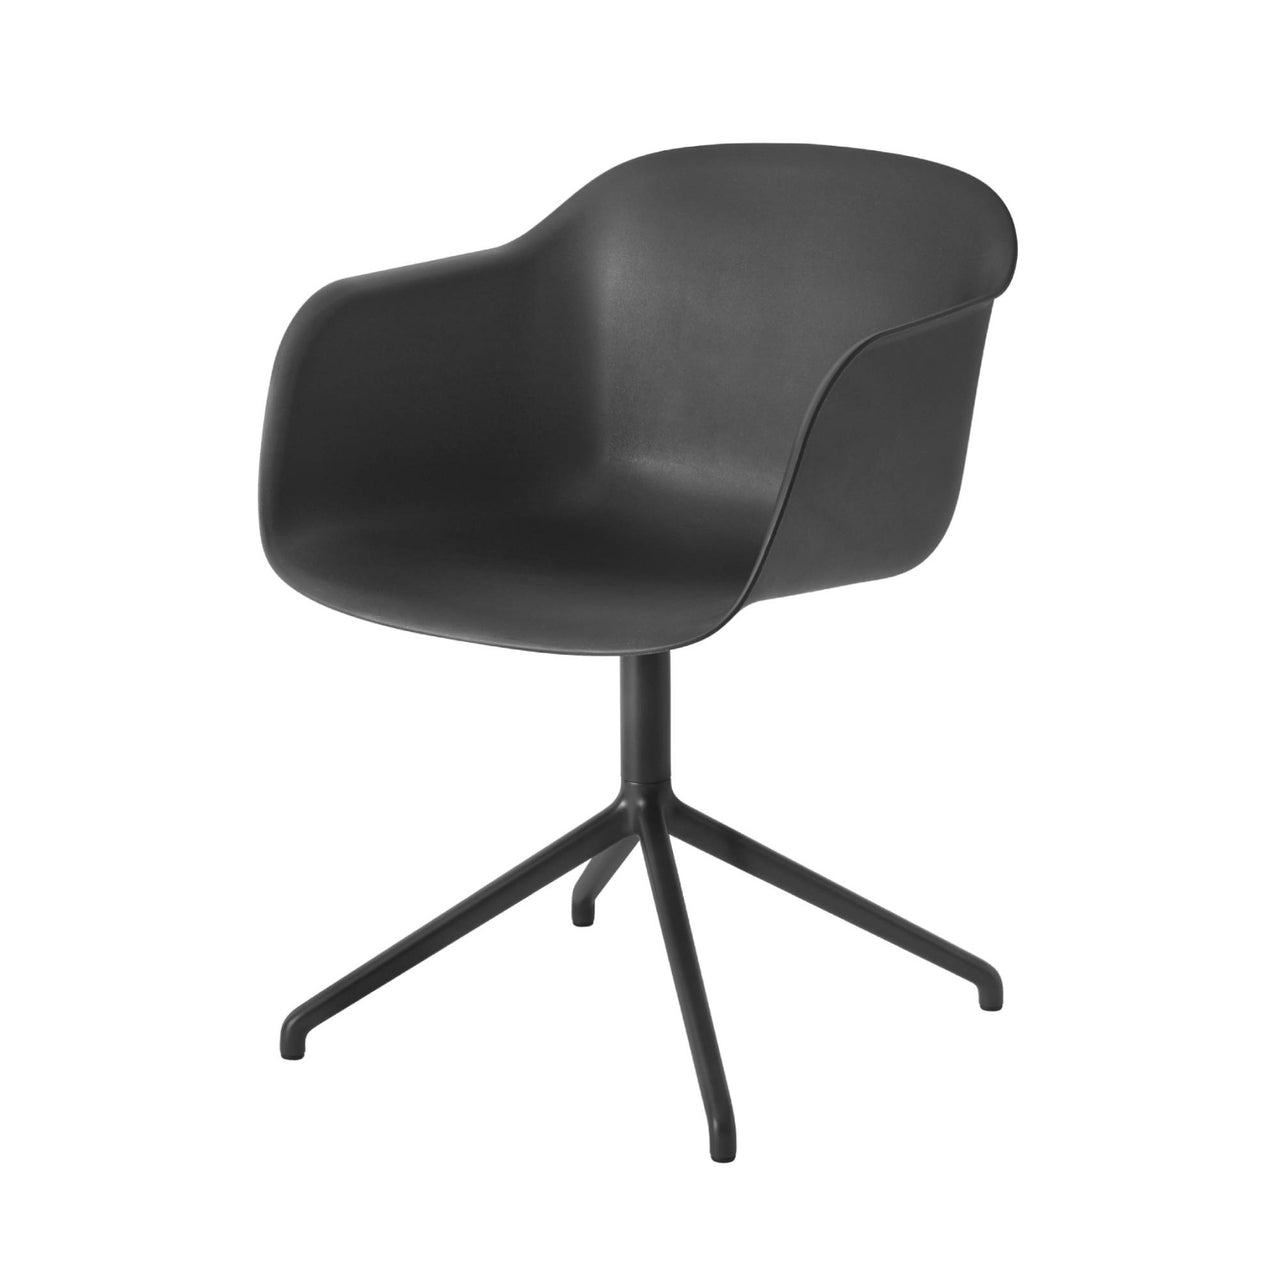 Fiber Armchair Swivel Base: Black